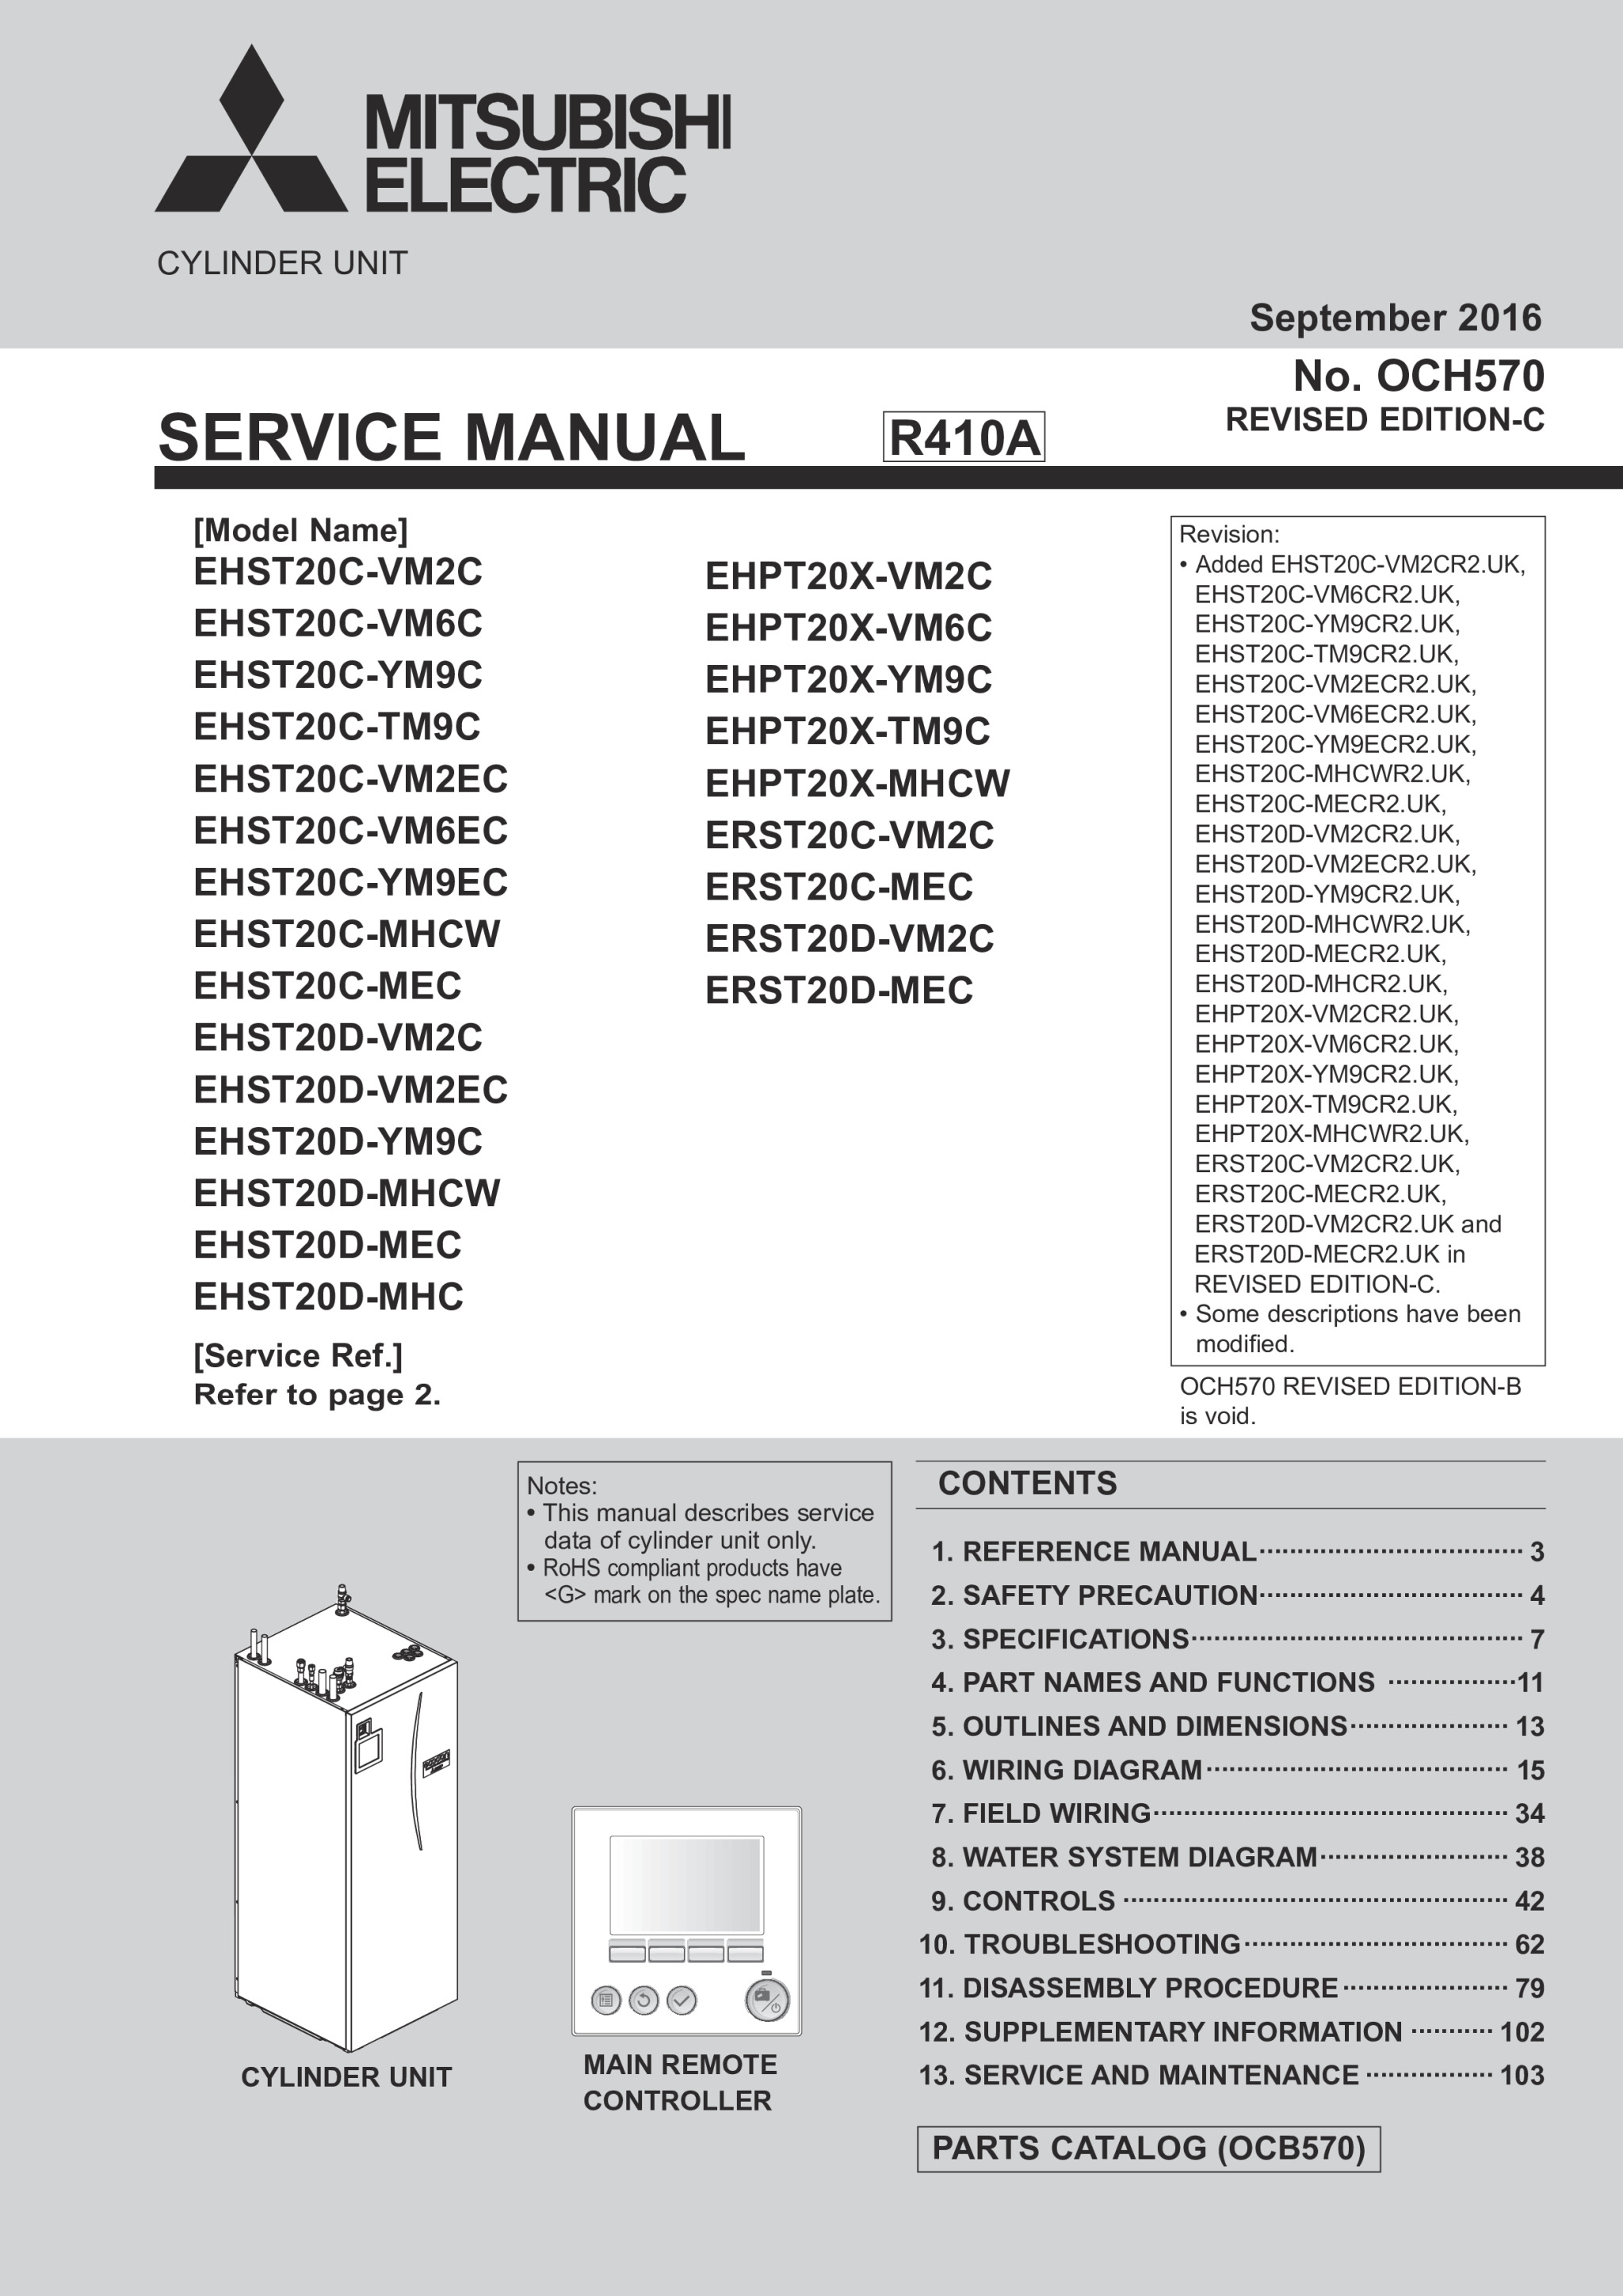 ecodan ftc5 ehpt20x mhcw ehst20 d c mhcw cylinder service rh library mitsubishielectric co uk 2003 Mitsubishi Lancer Manual Cover Mitsubishi Lancer Automatic or Manual